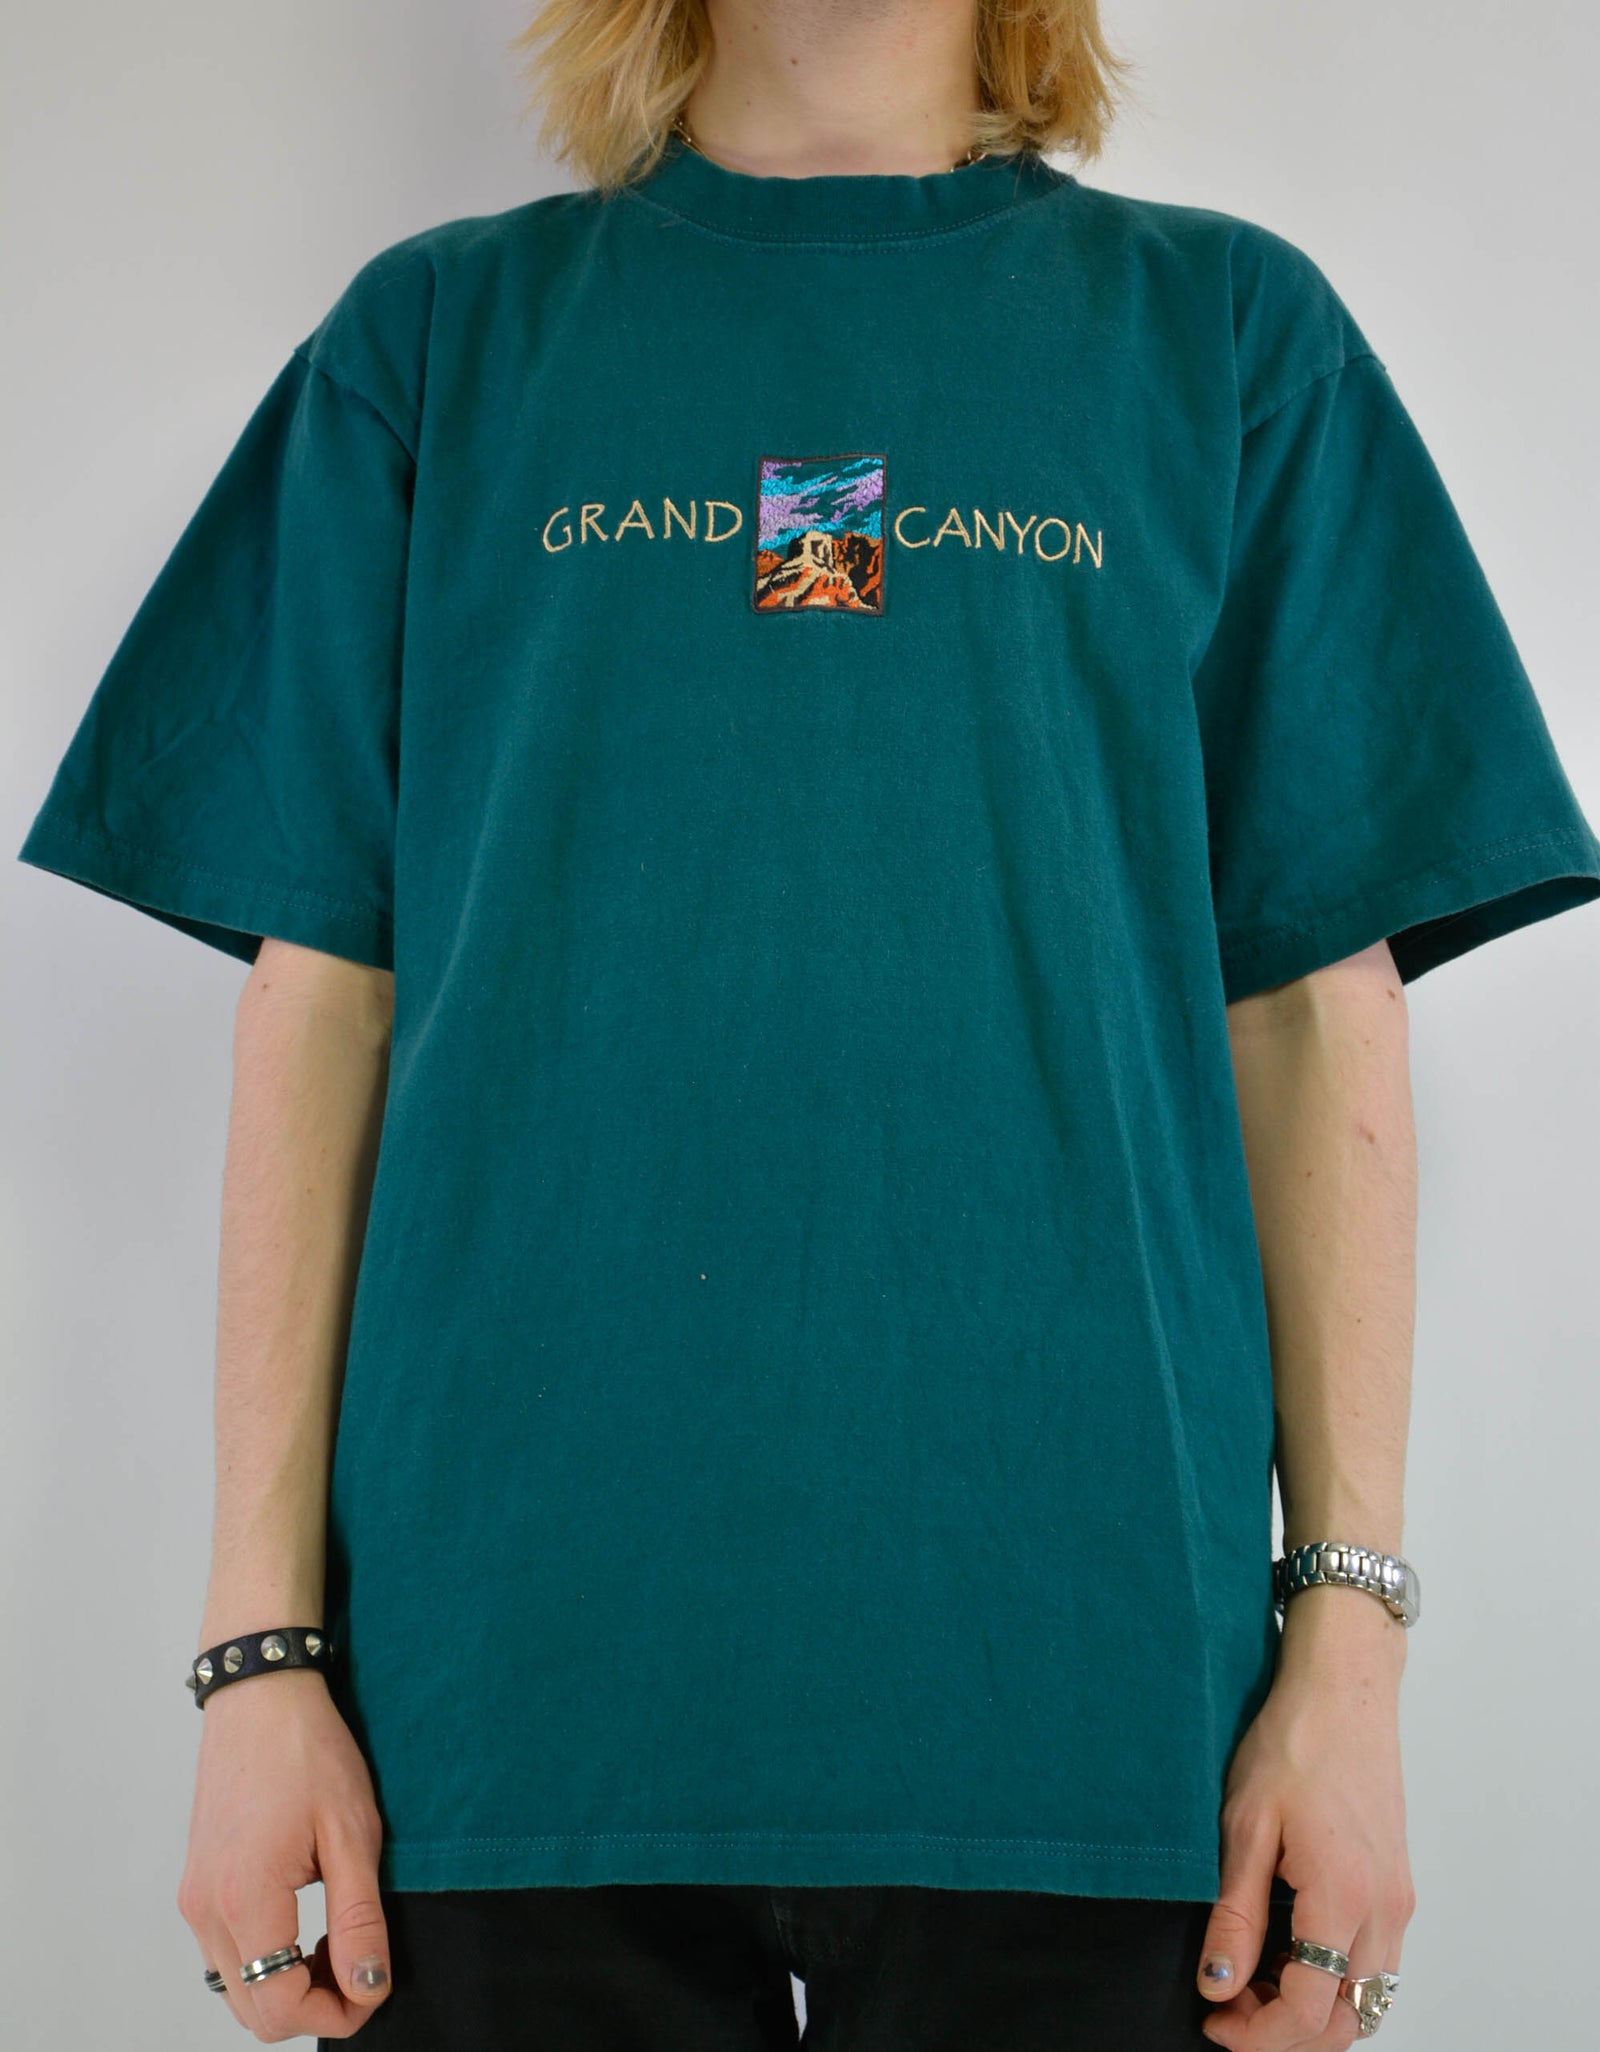 Grand Canyon tee - PICKNWEIGHT - VINTAGE KILO STORE